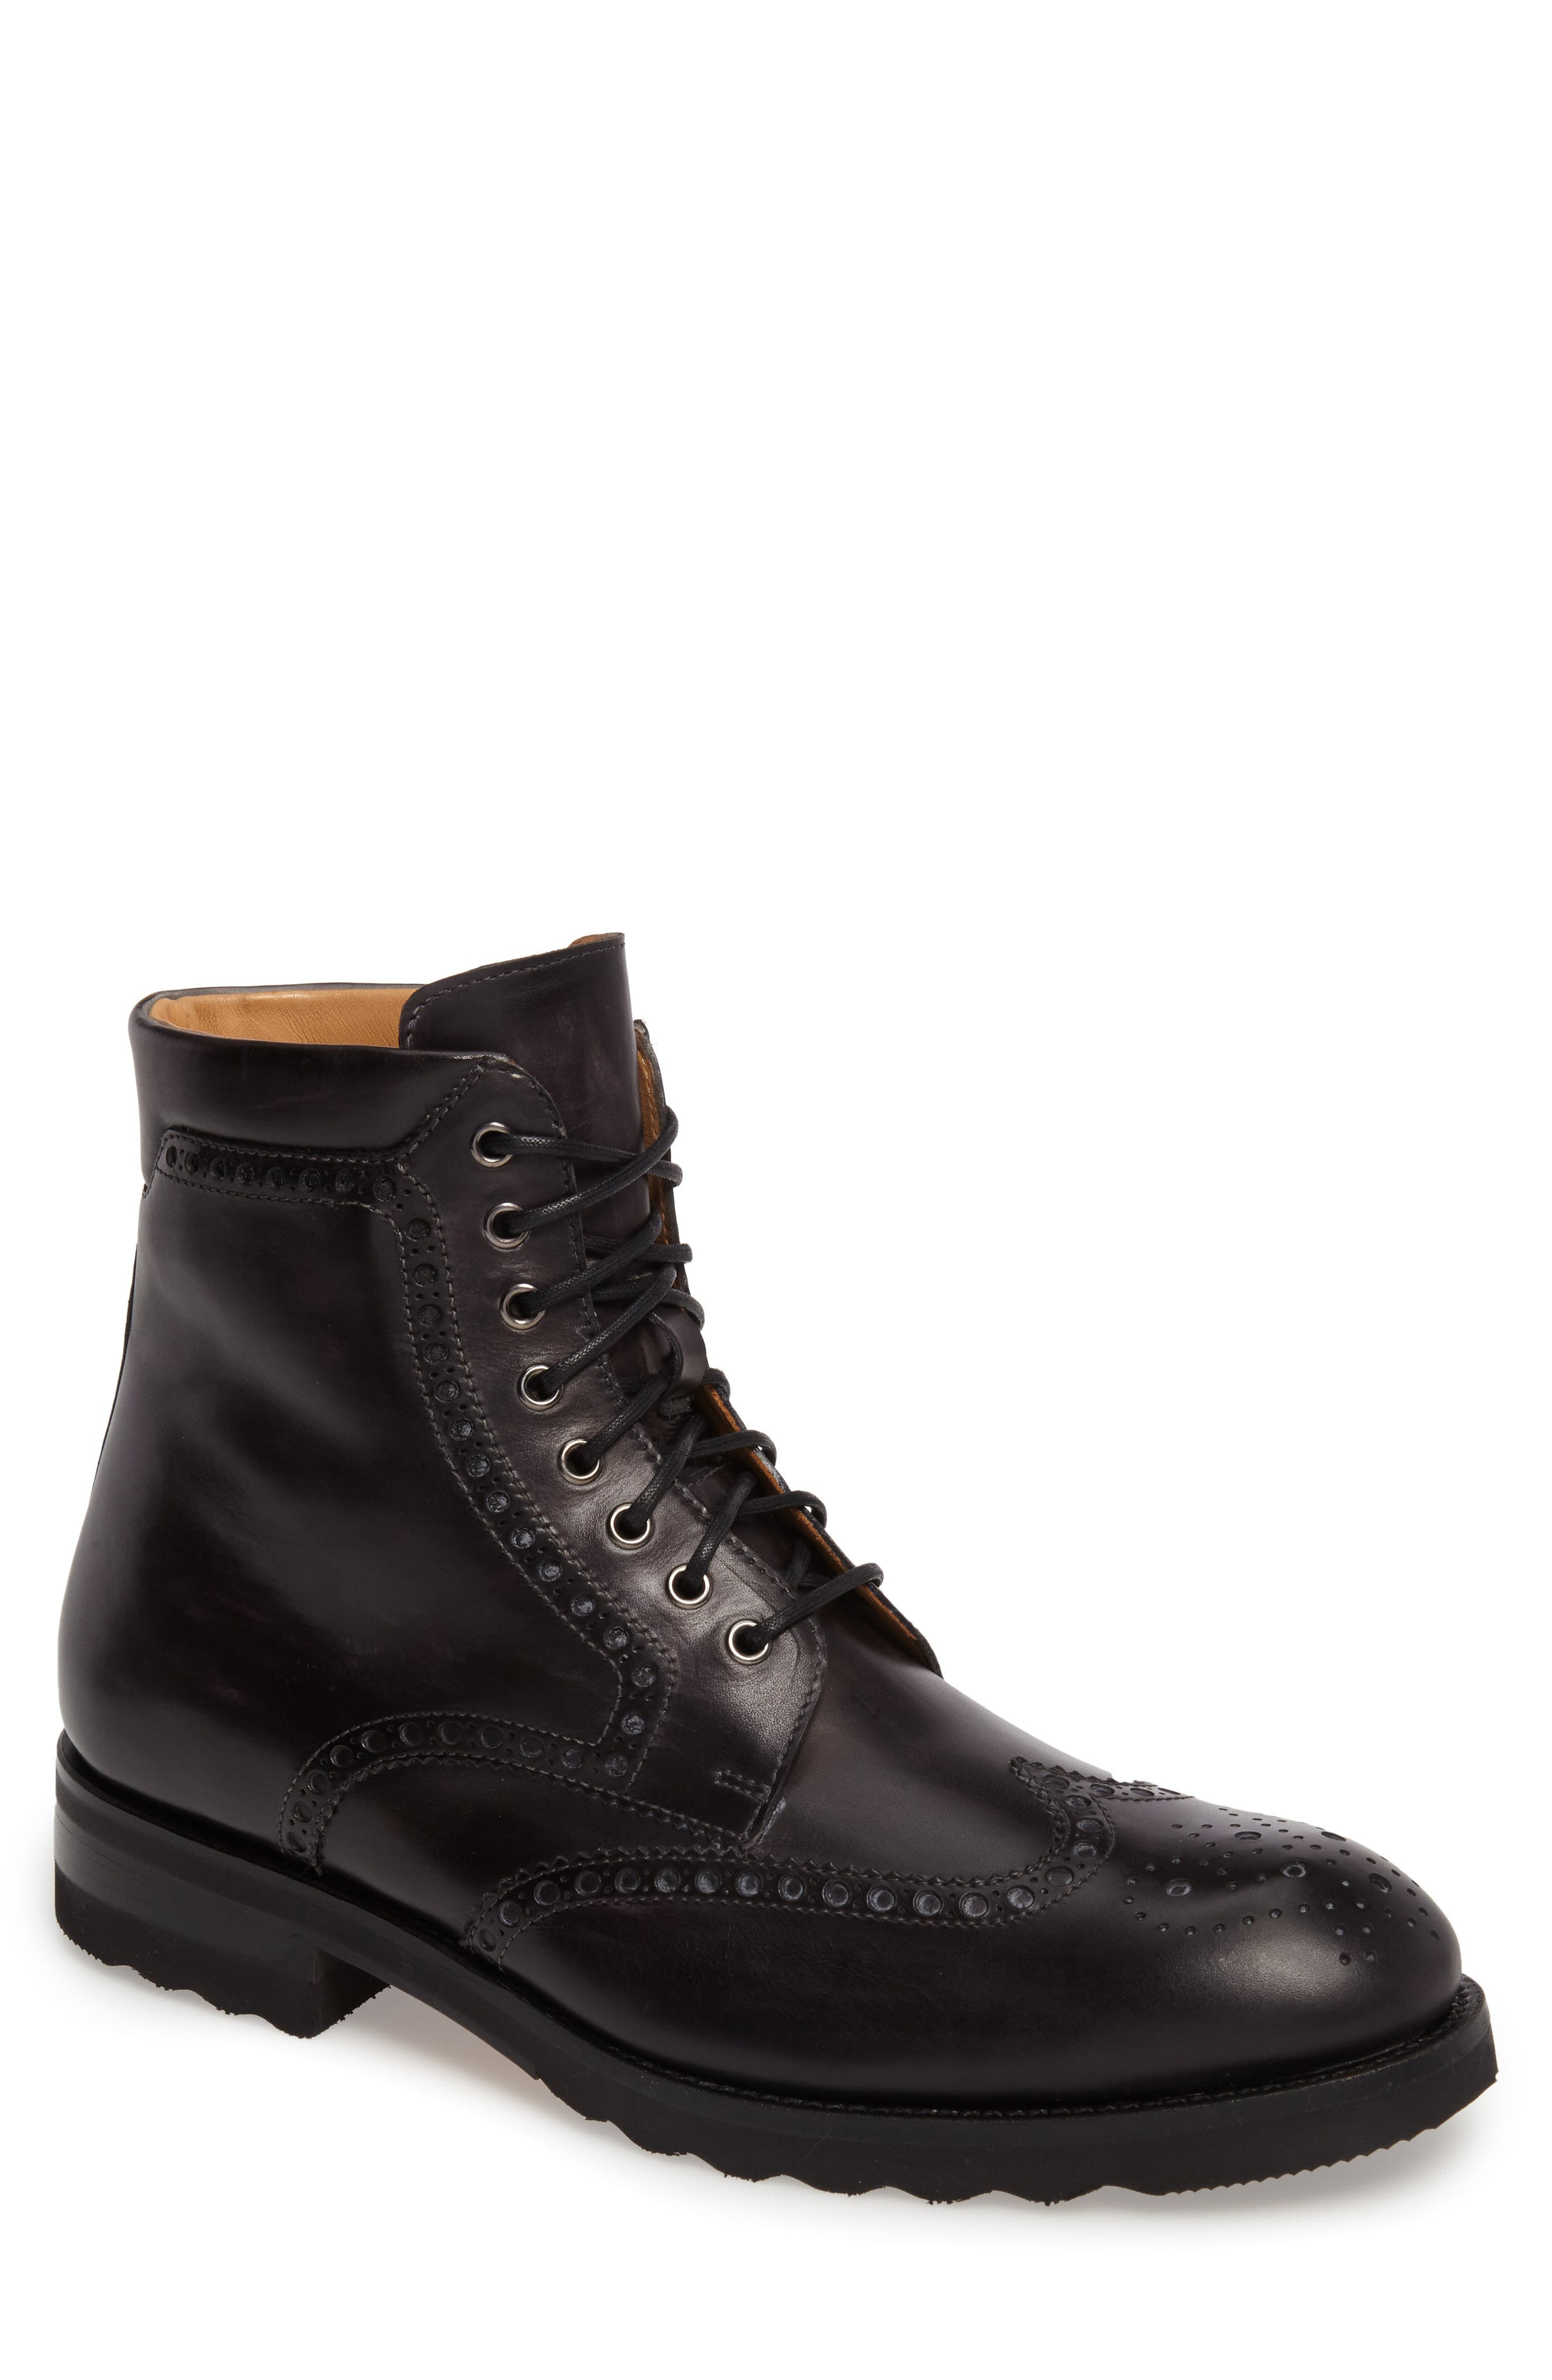 Fairfax Wingtip Boot,                             Main thumbnail 1, color,                             020